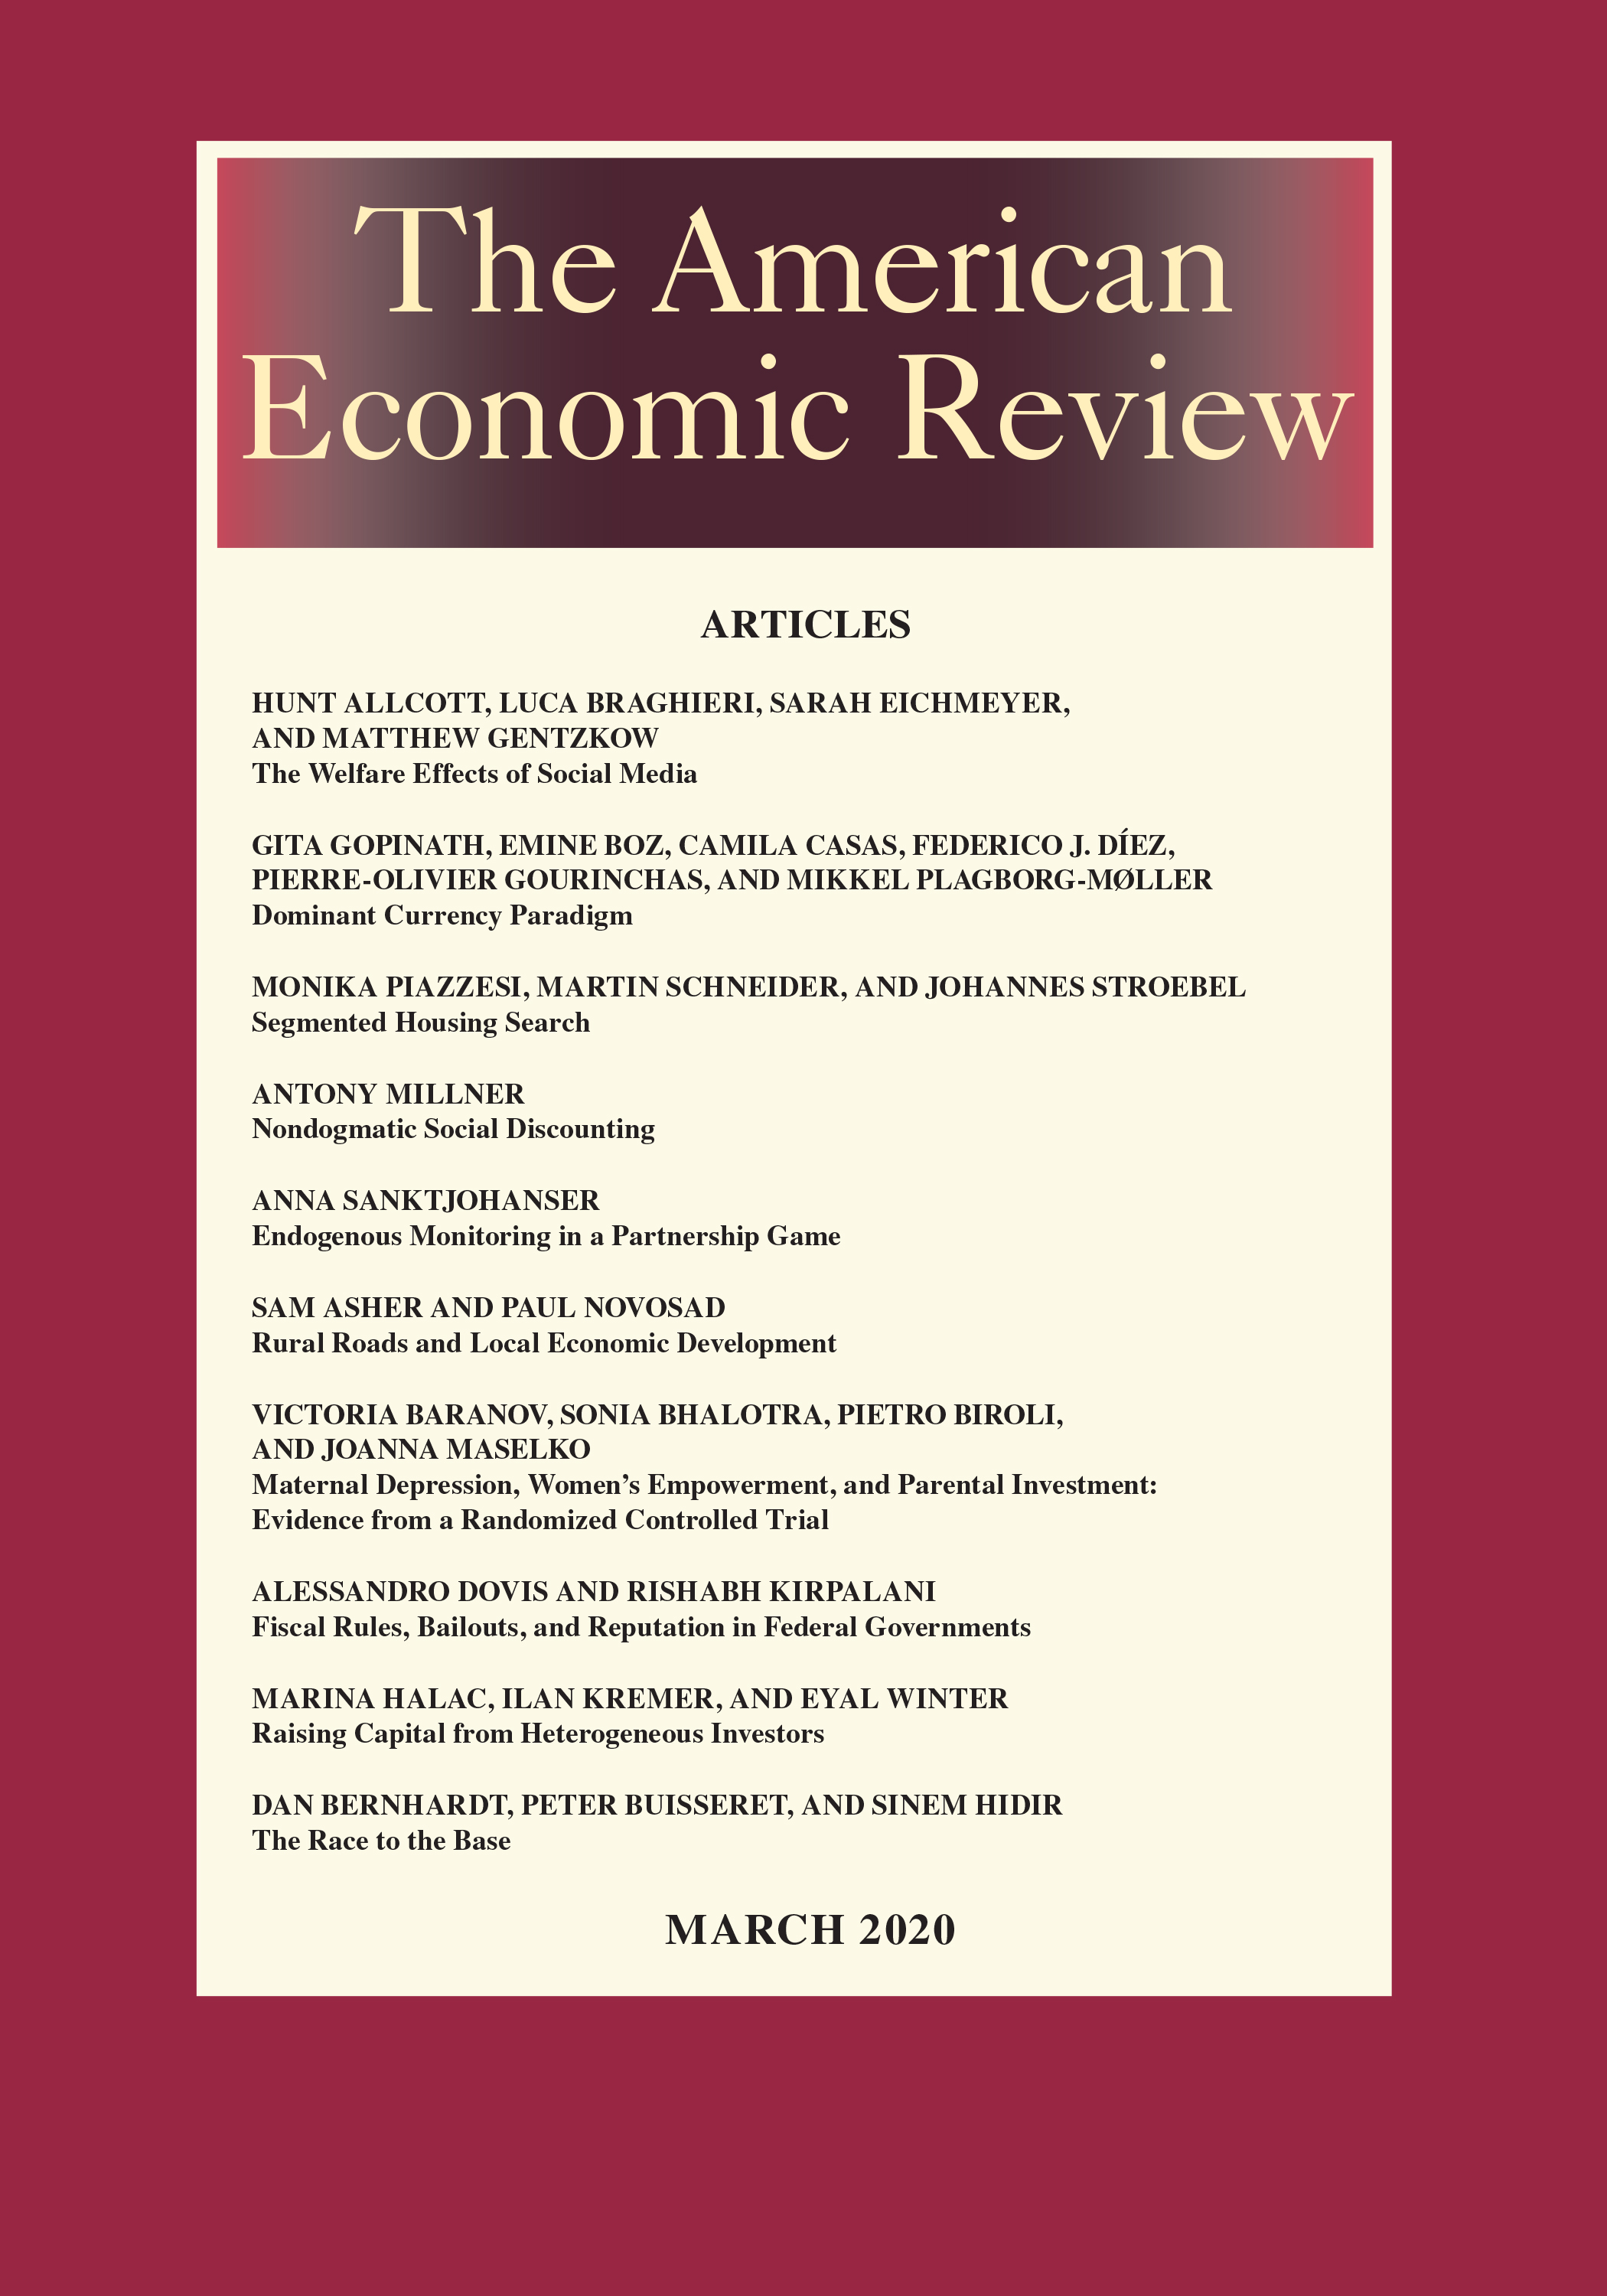 American Economic Review Vol. 110 No. 3 March 2020